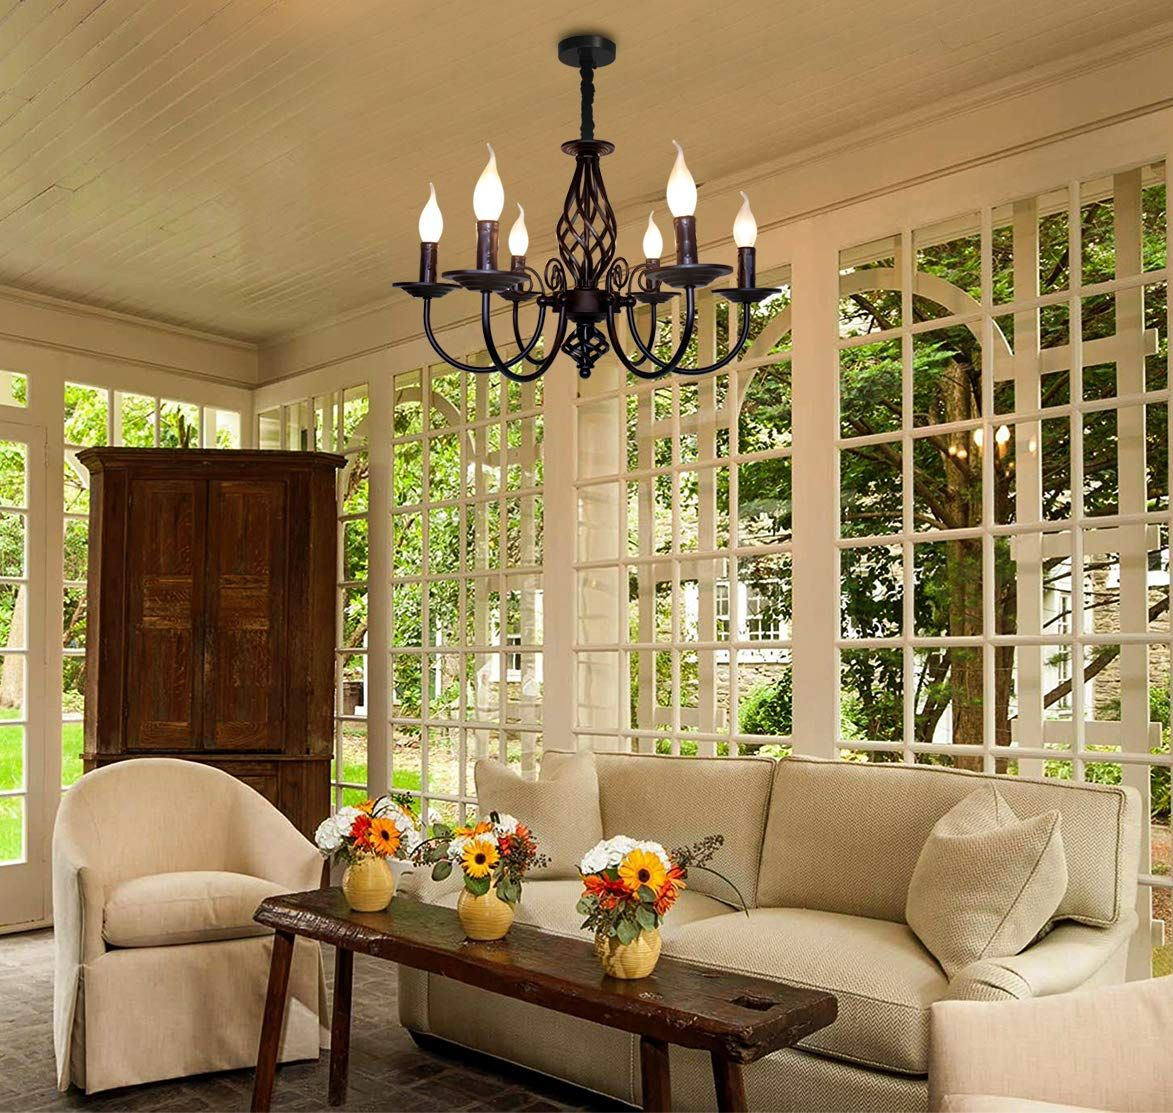 French Country Chandelier,Vintage Candle